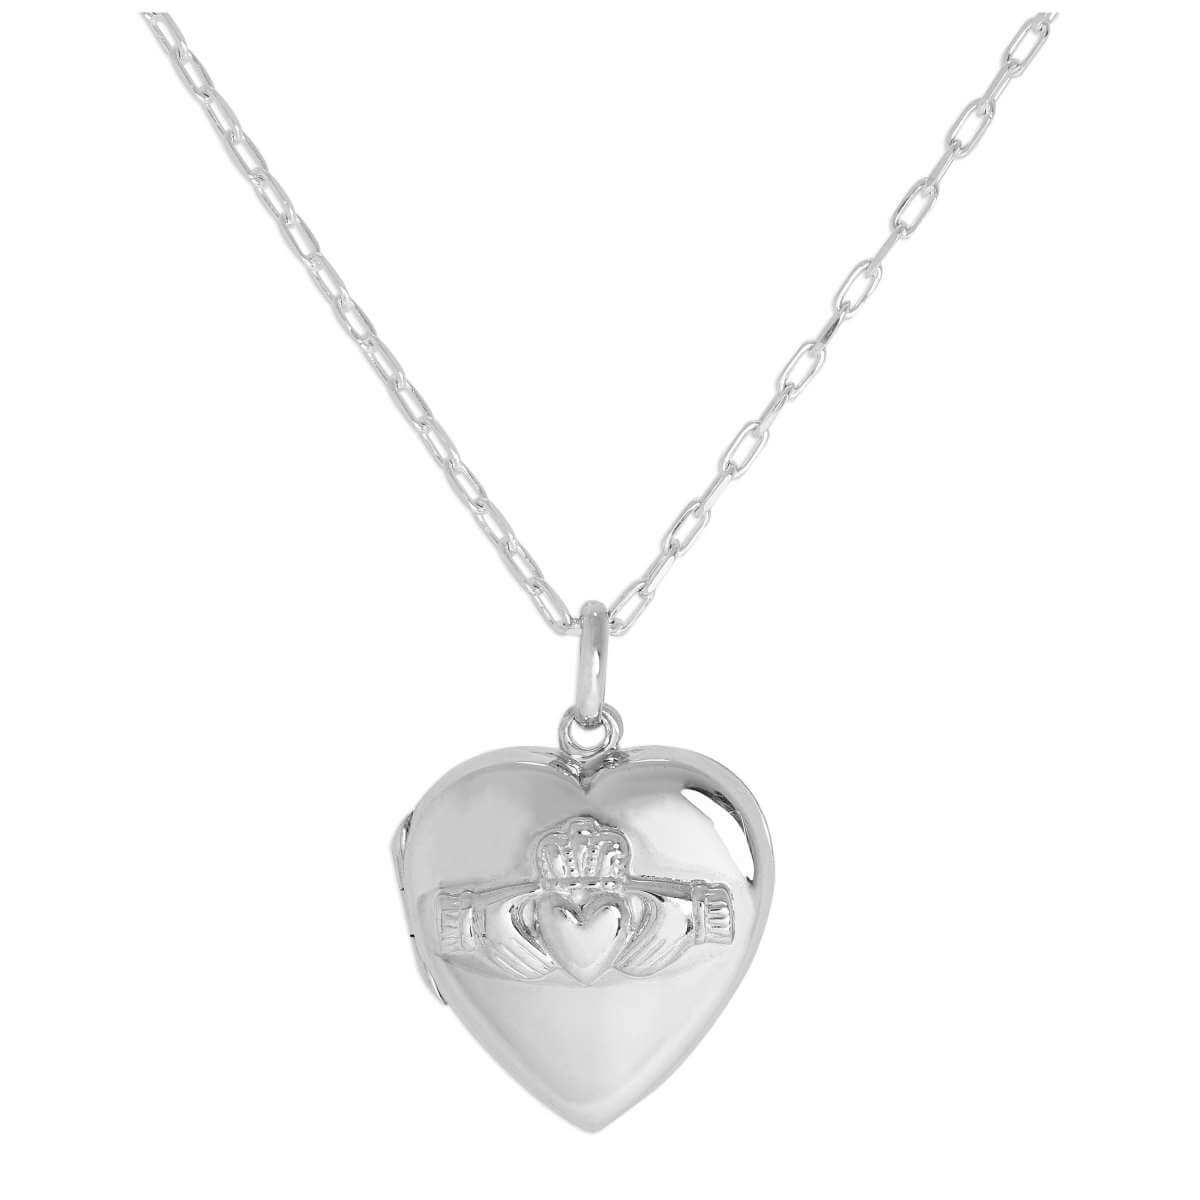 Sterling Silver Claddagh Heart Locket on Chain 16 - 24 Inches